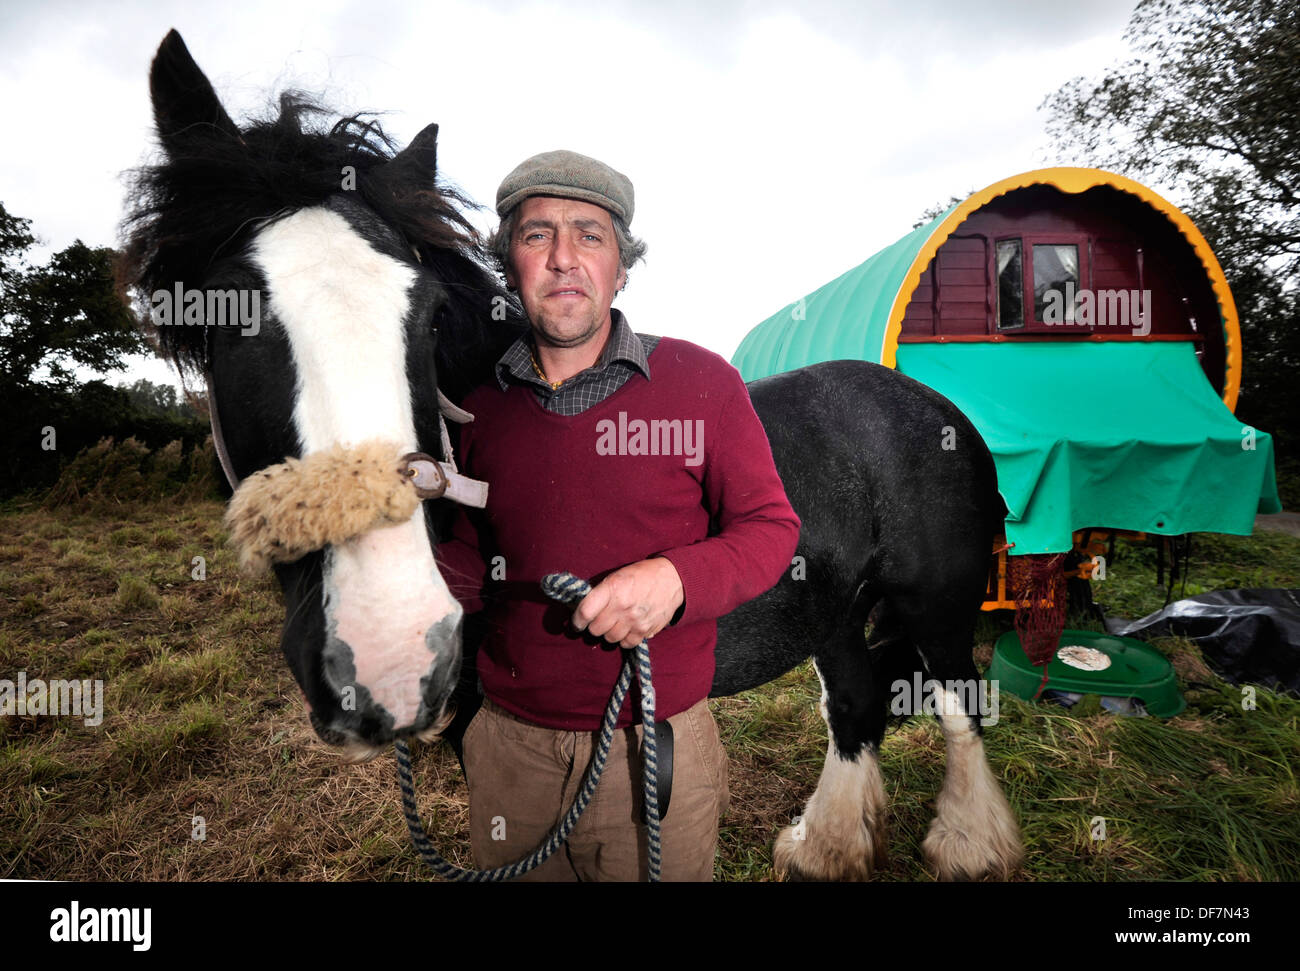 Traditional gypsy Traveling wagon, East Sussex. Stephen Jones with his horse Tegryn - Stock Image